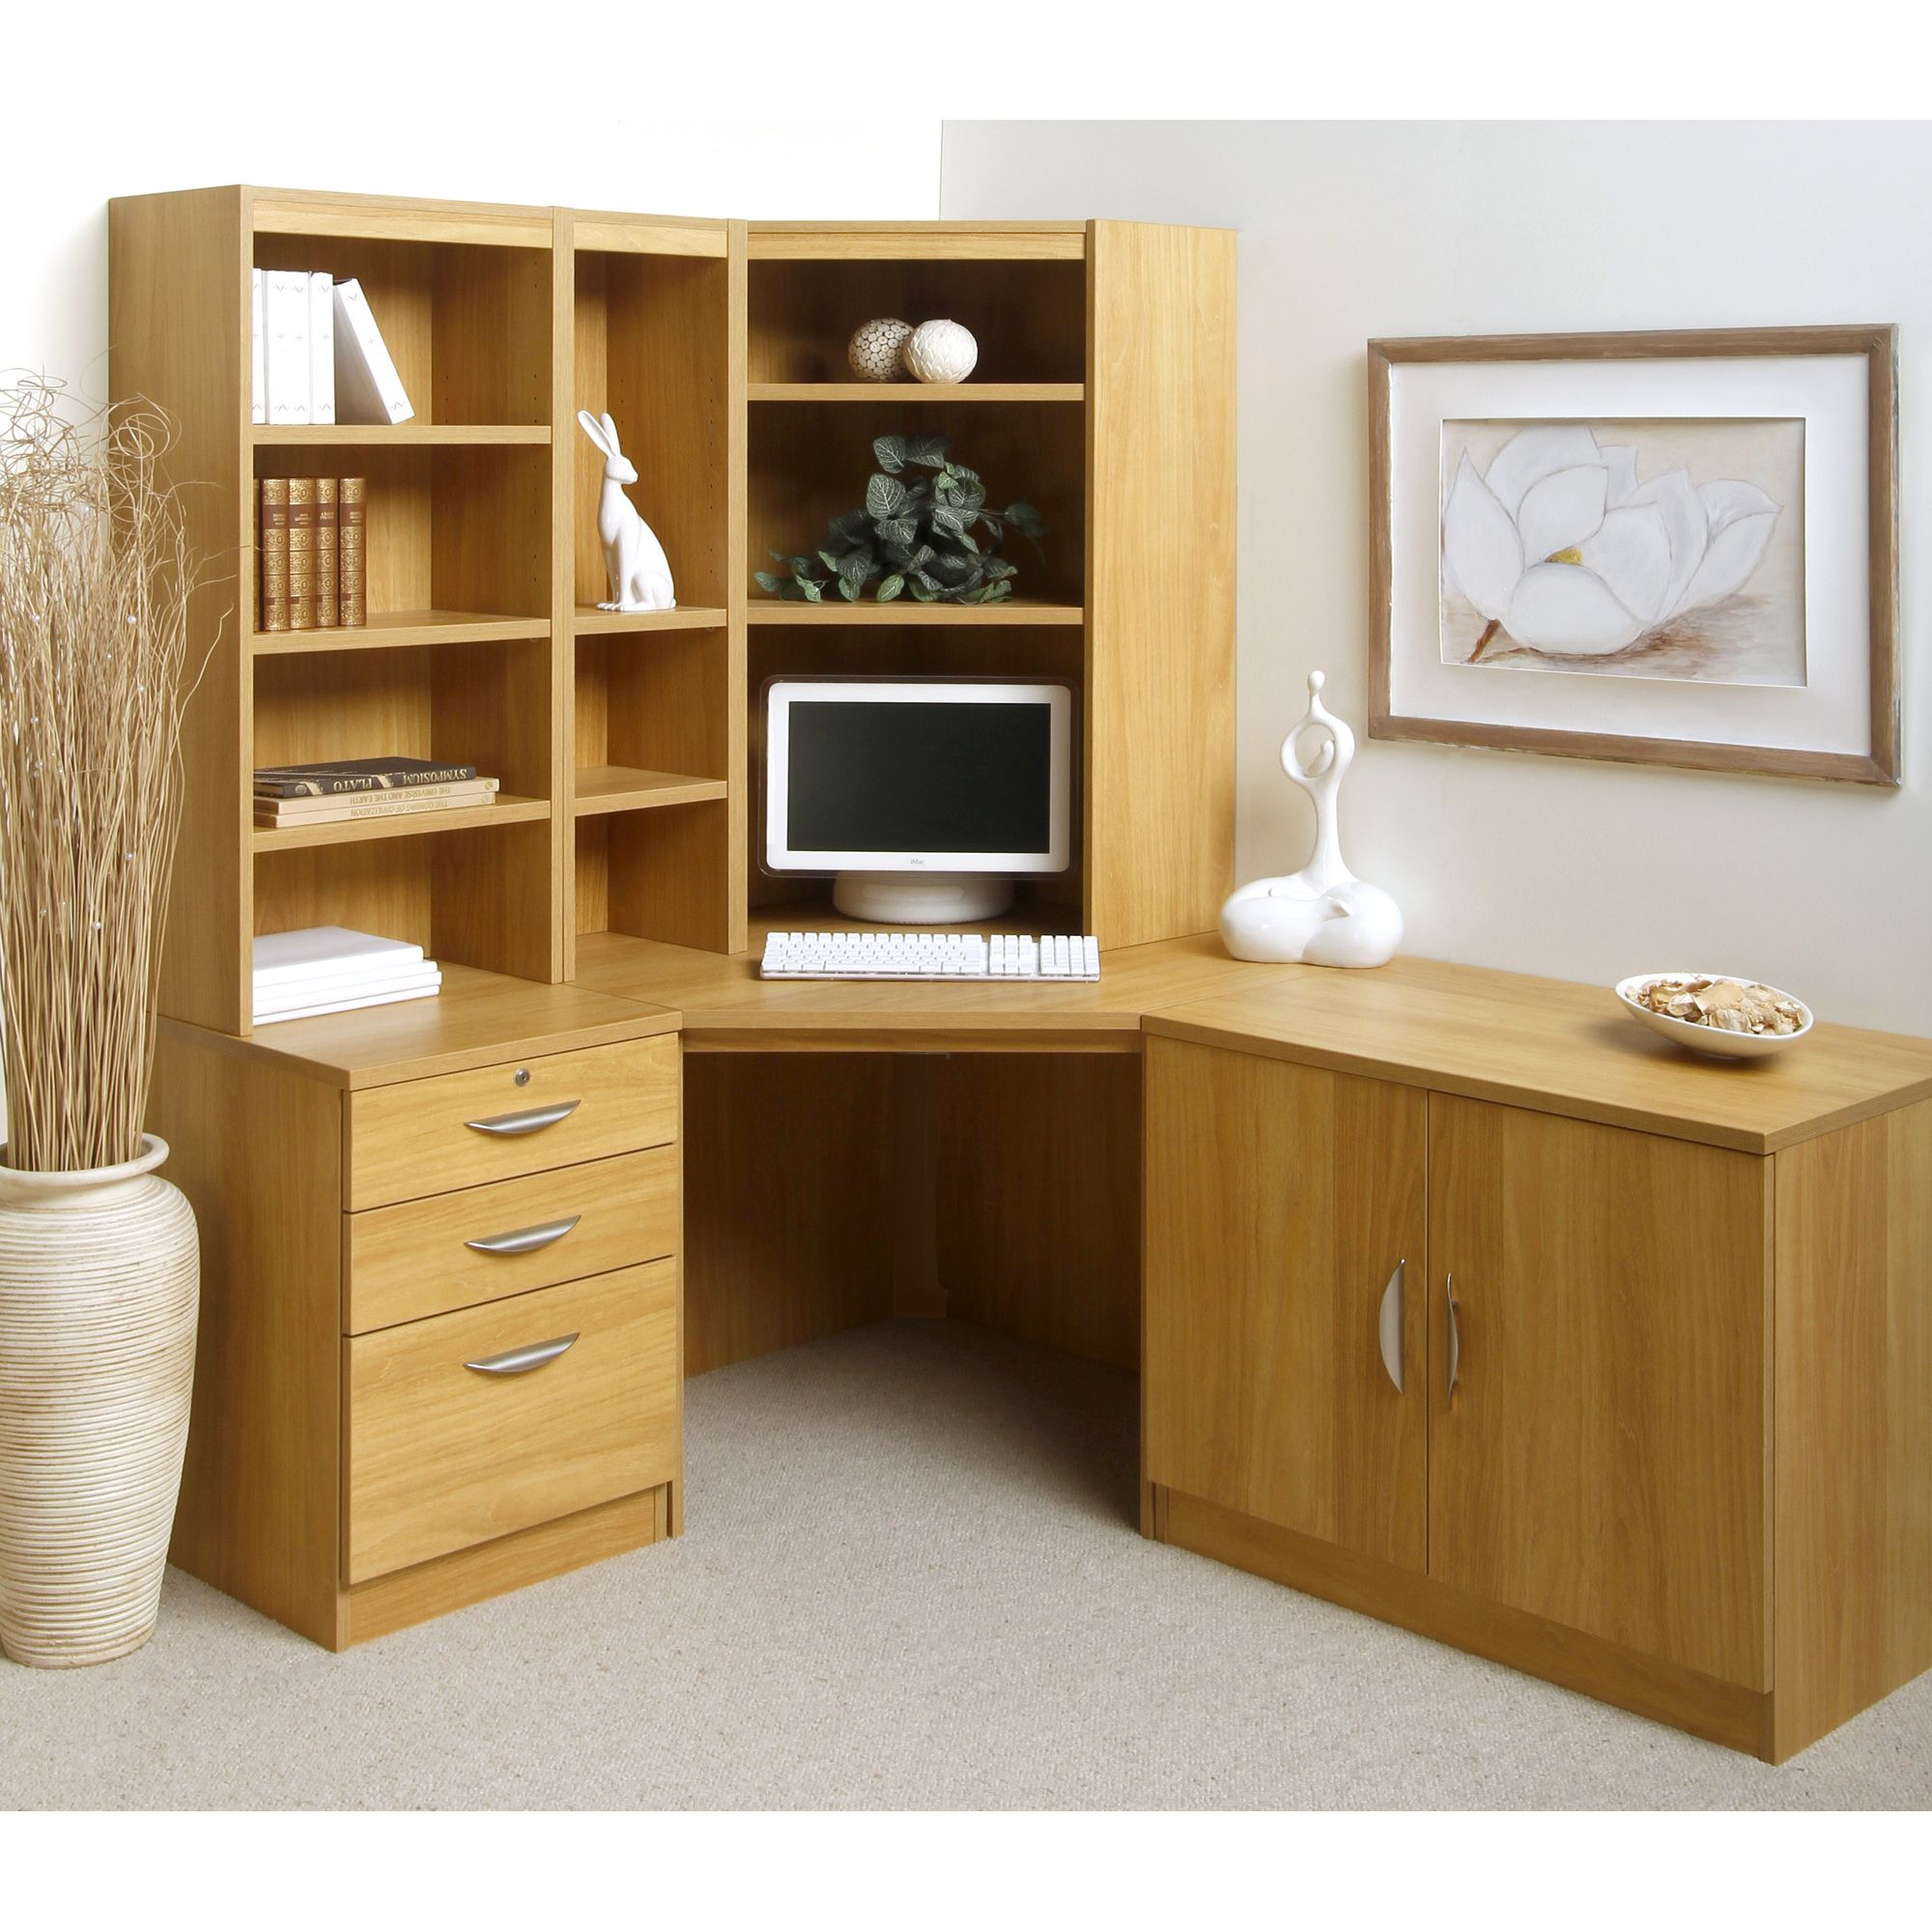 Corner office desk uk uk office furniture affordable office supplies office corner desks for - Corner office desk ...